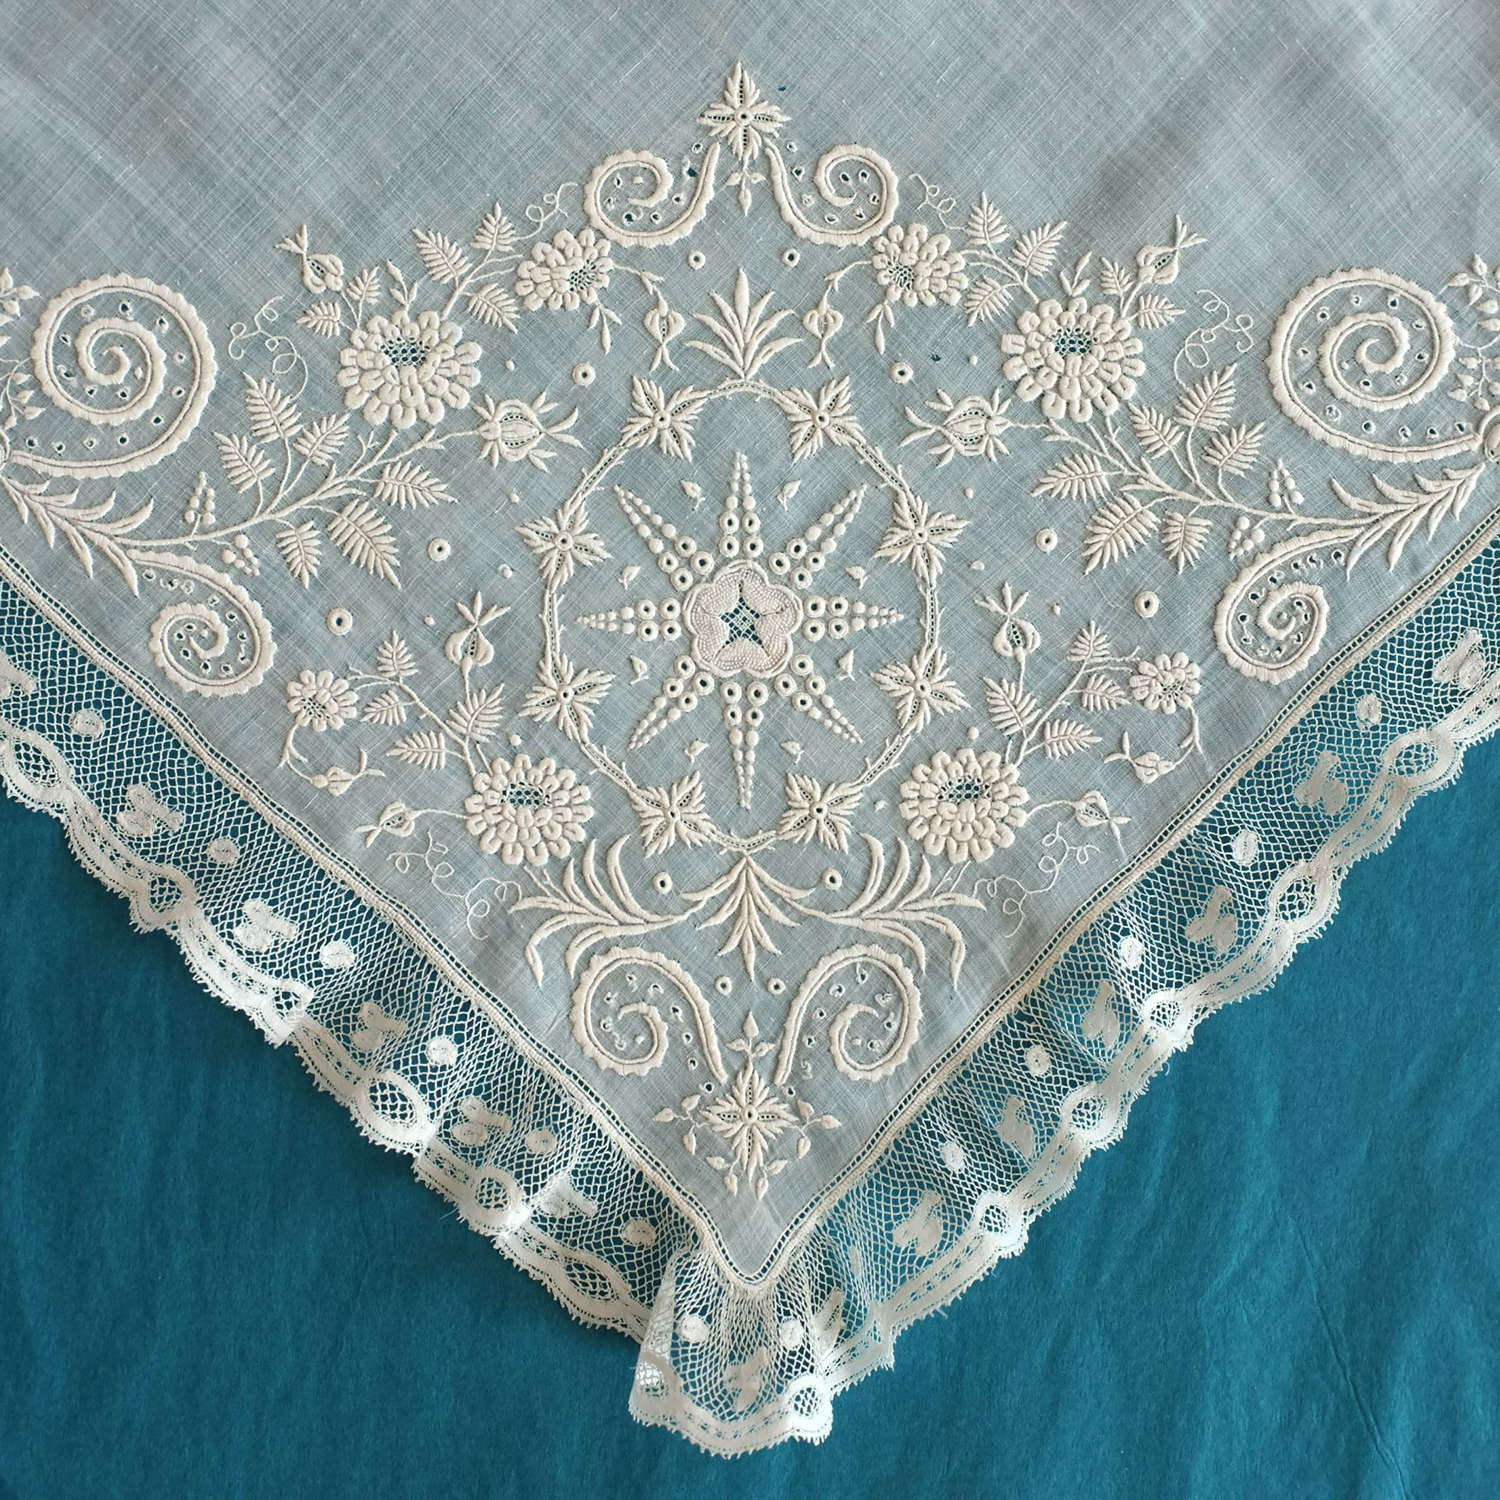 Antique late 18th /early 19th Century Whitework Handkerchief